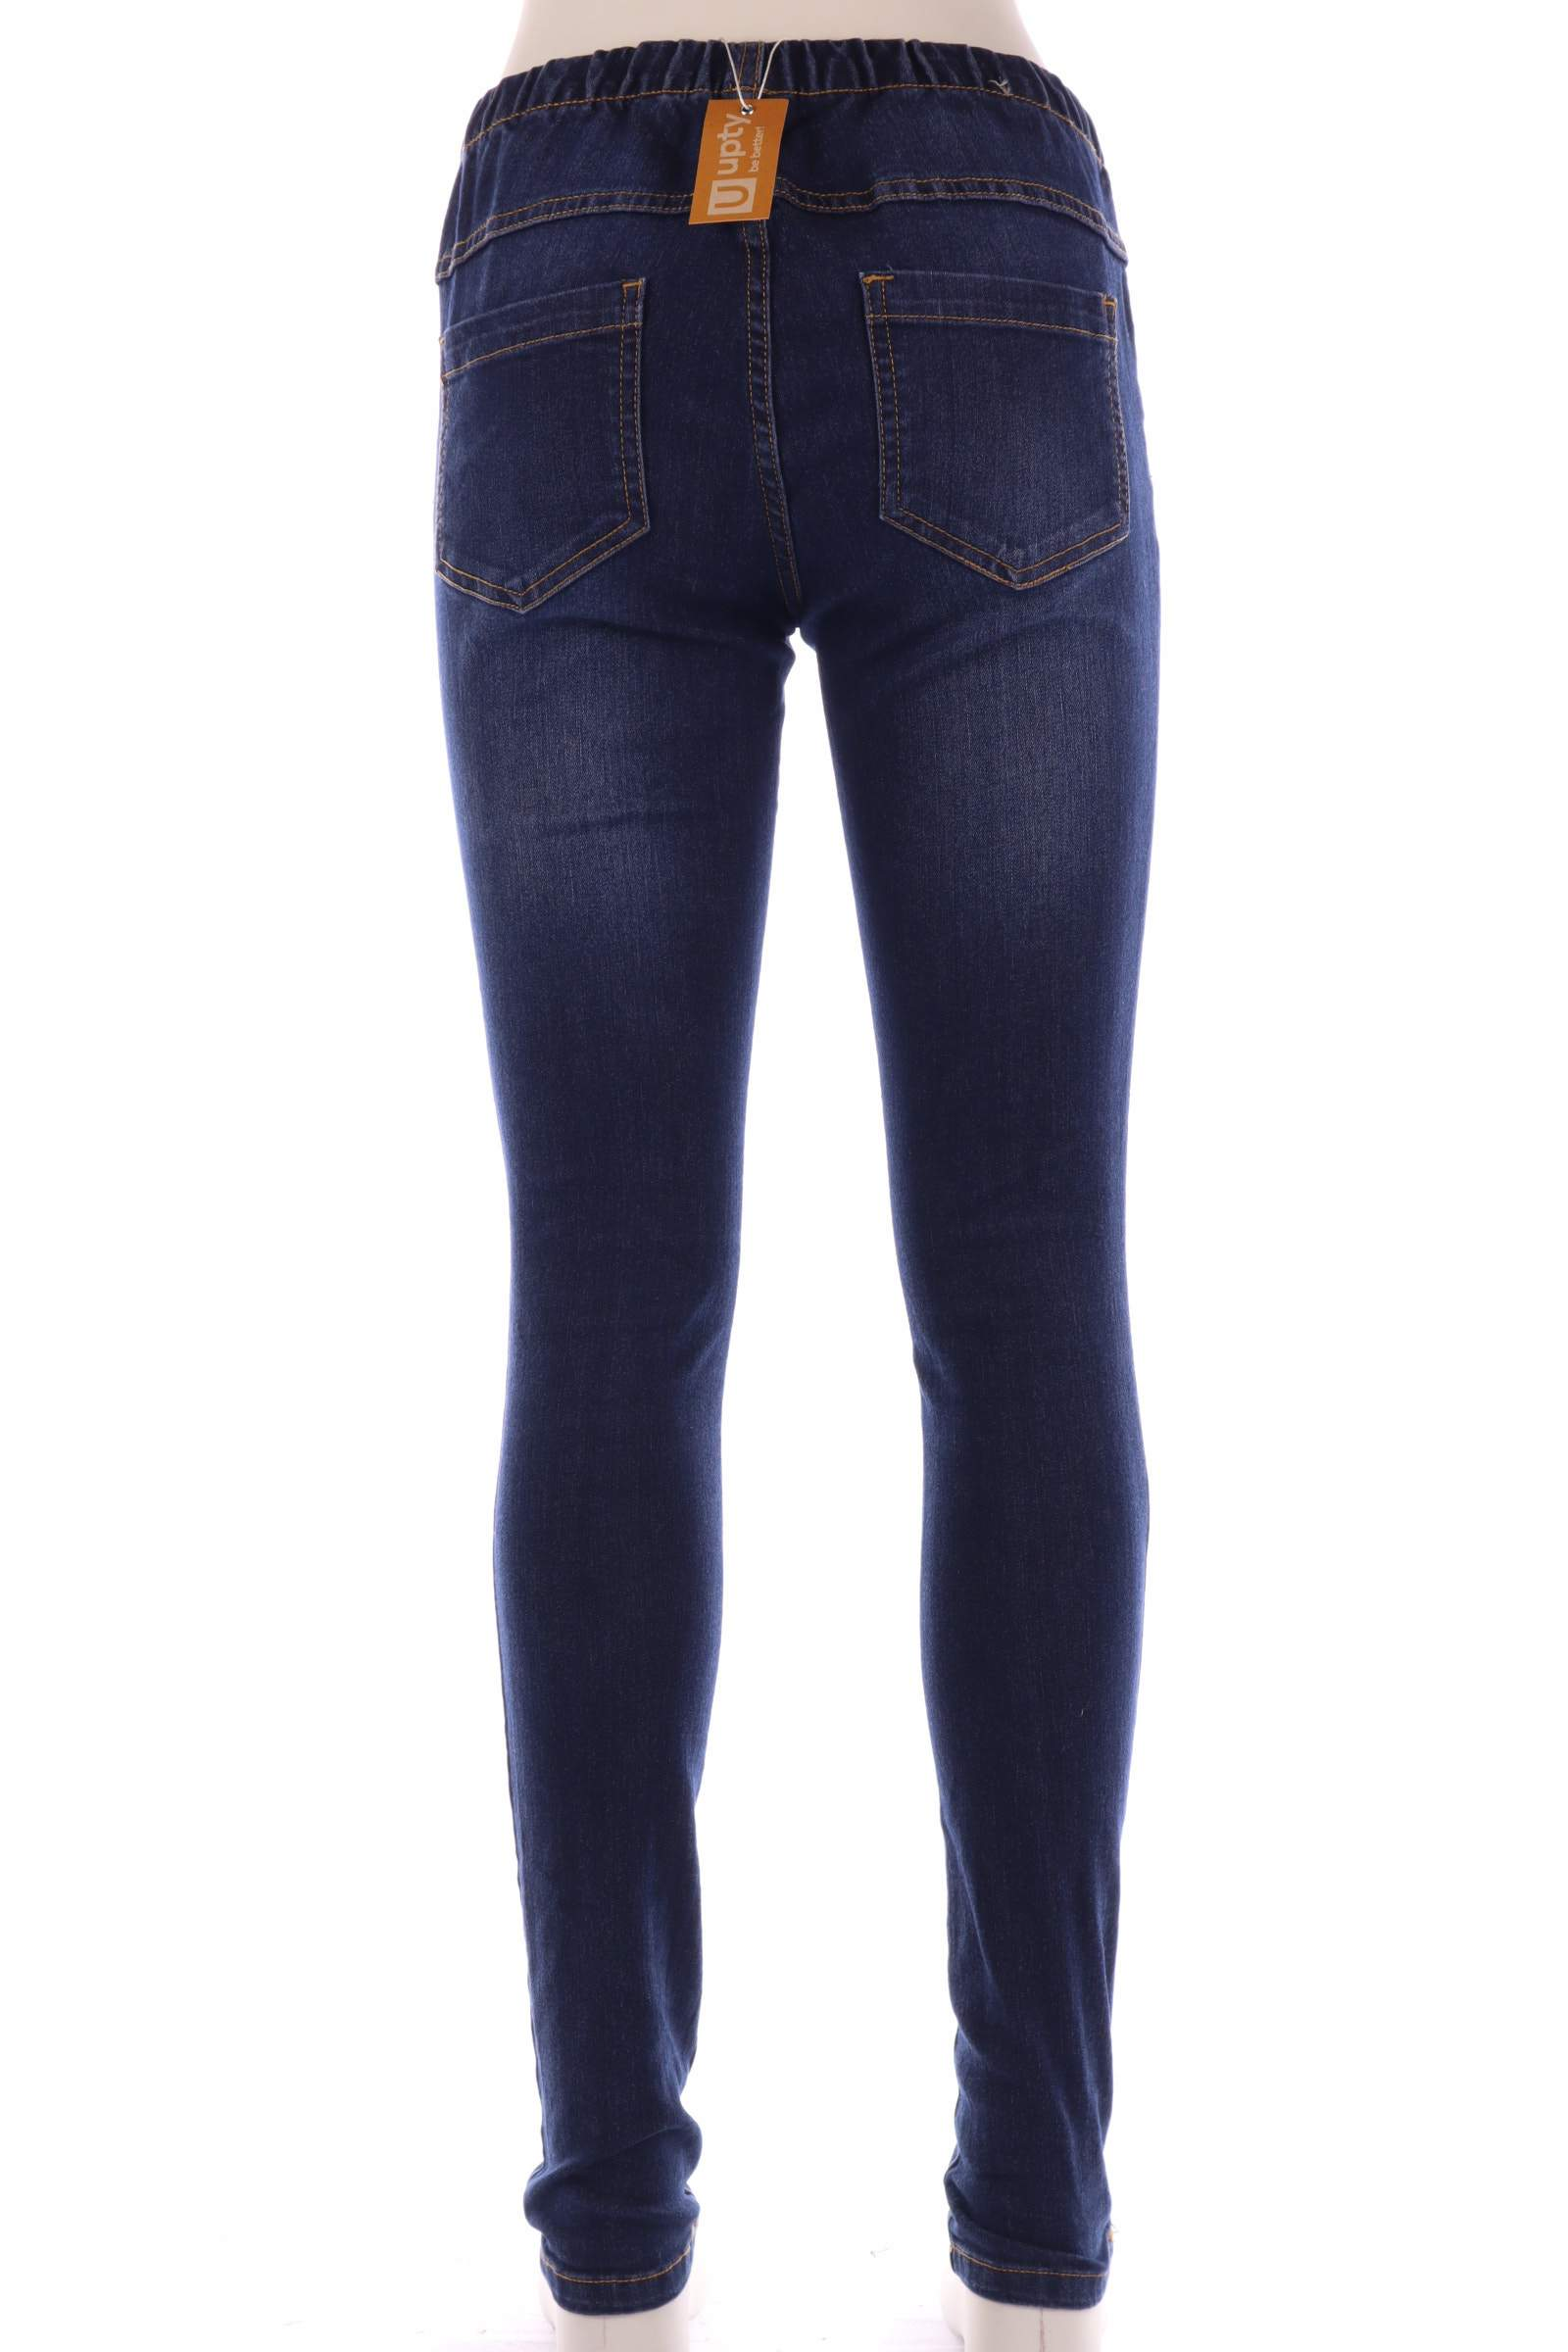 Pieces Blue Jeans - upty.store